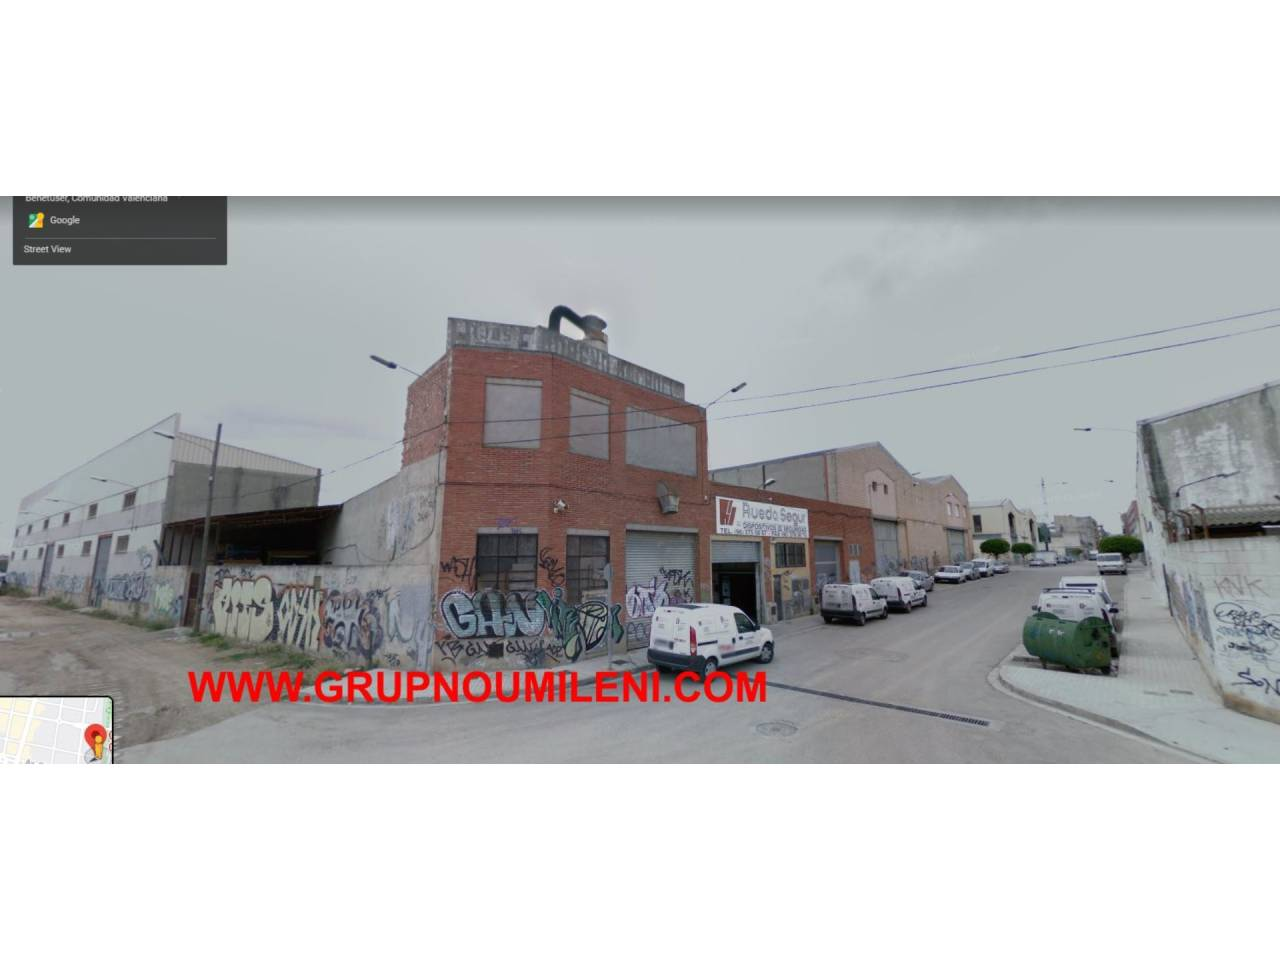 Nau industrial  Calle almirante ciscar. Superficie total 400 m², nave industrial superficie solar 350 m²